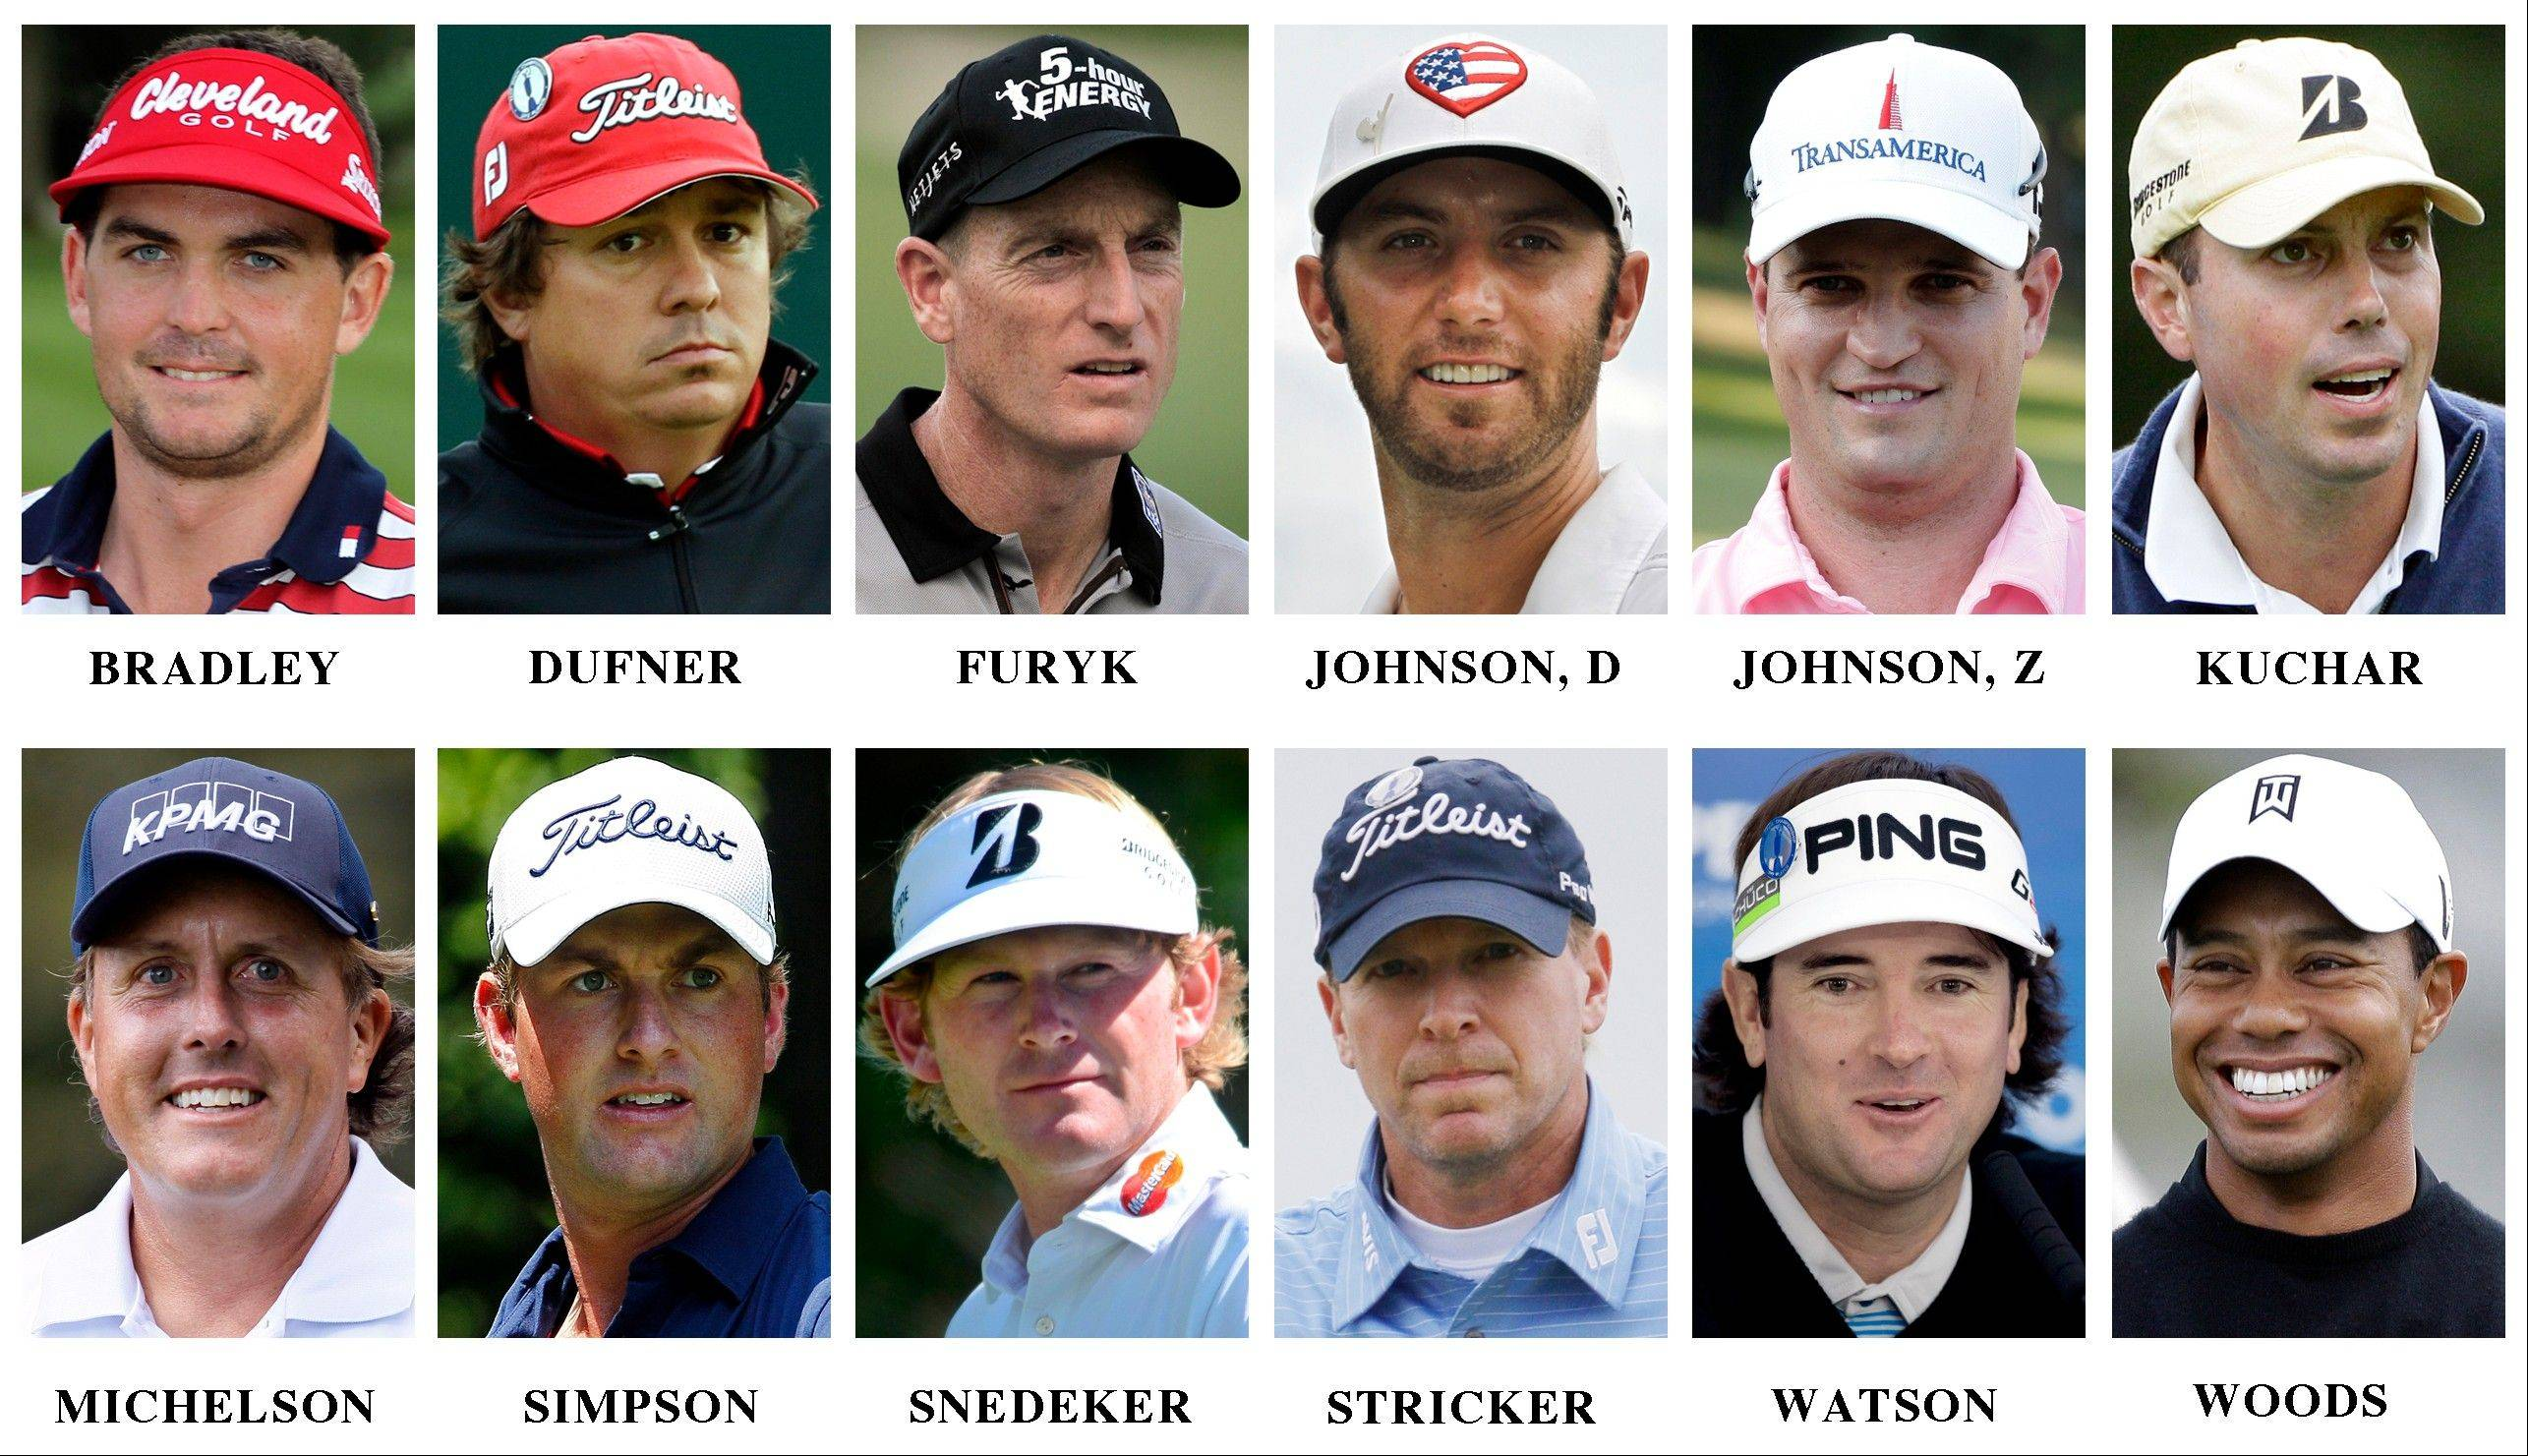 Here is the United States Ryder Cup golf team, top row from left: Keegan Bradley, Jason Dufner, Jim Furyk, Dustin Johnson, Zach Johnson and Matt Kuchar. Bottom row, from left: Phil Mickelson, Webb Simpson, Brandt Snedeker, Steve Stricker, Bubba Watson and Tiger Woods.